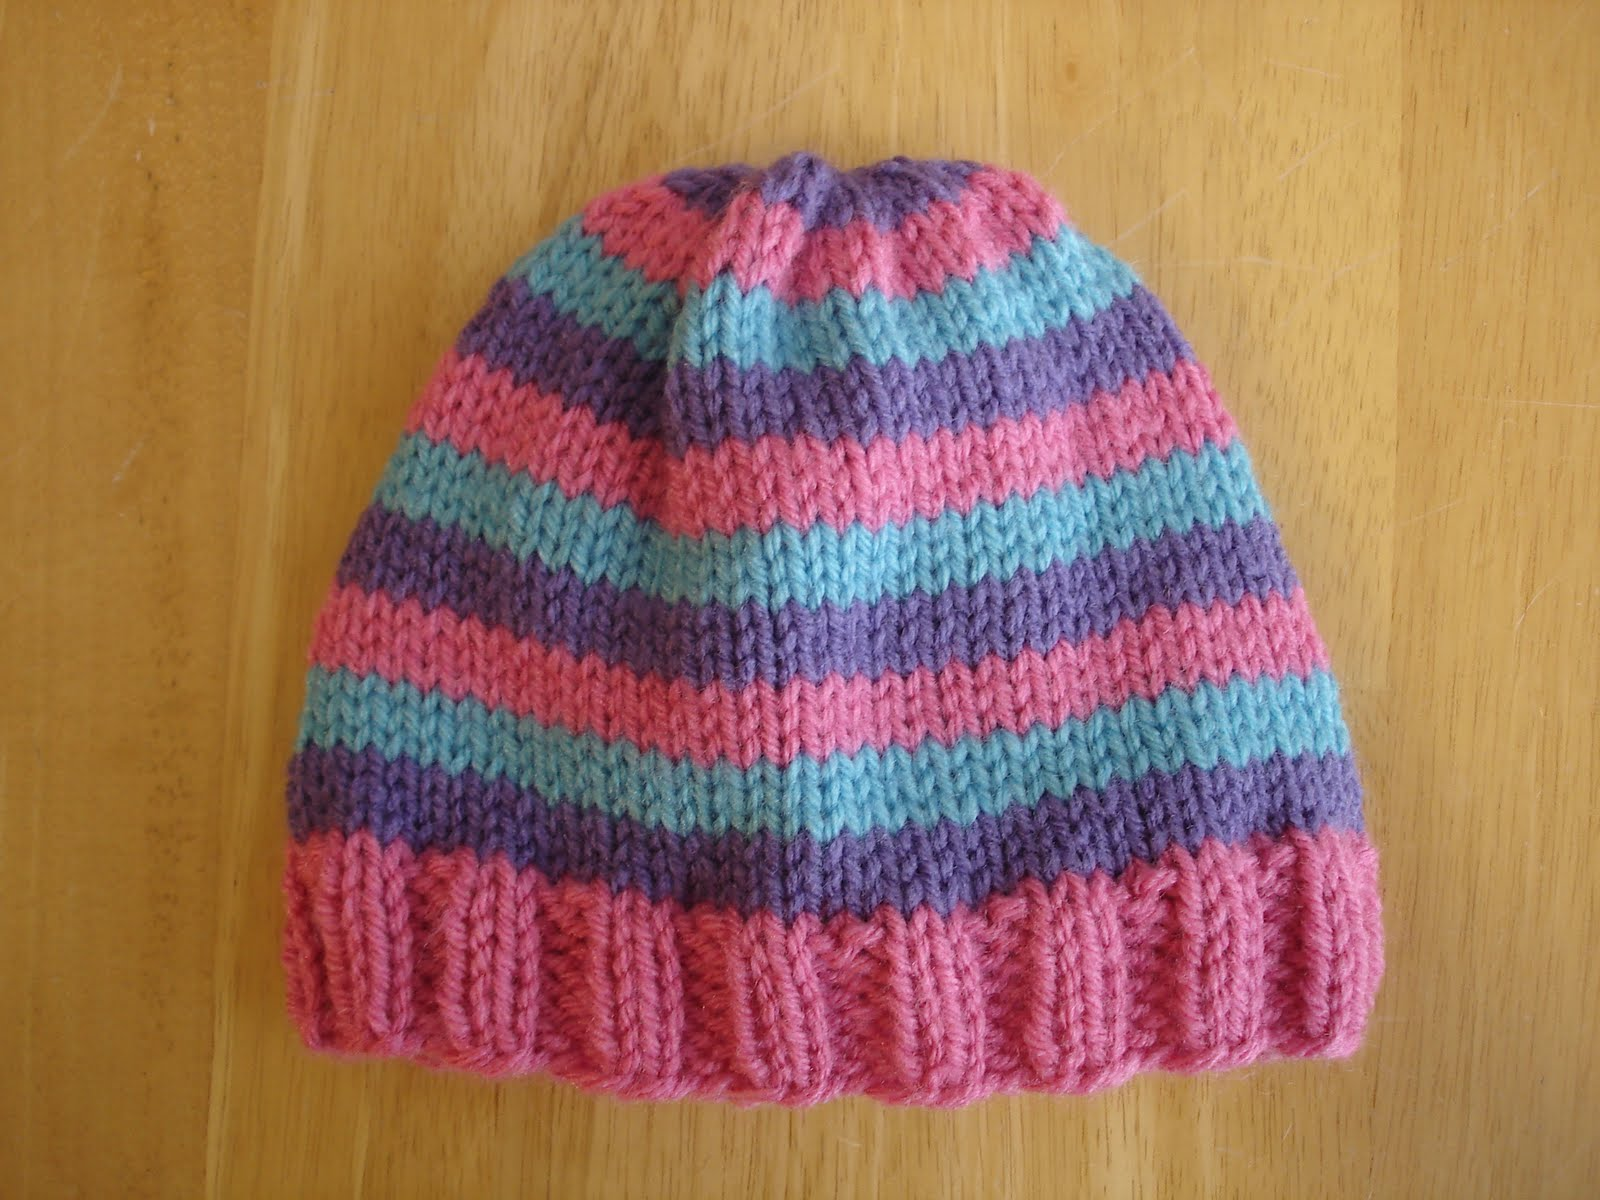 Knitting Patterns For Toddler Hats : Fiber Flux: Free Knitting Pattern...Super Pink Toddler Hat!